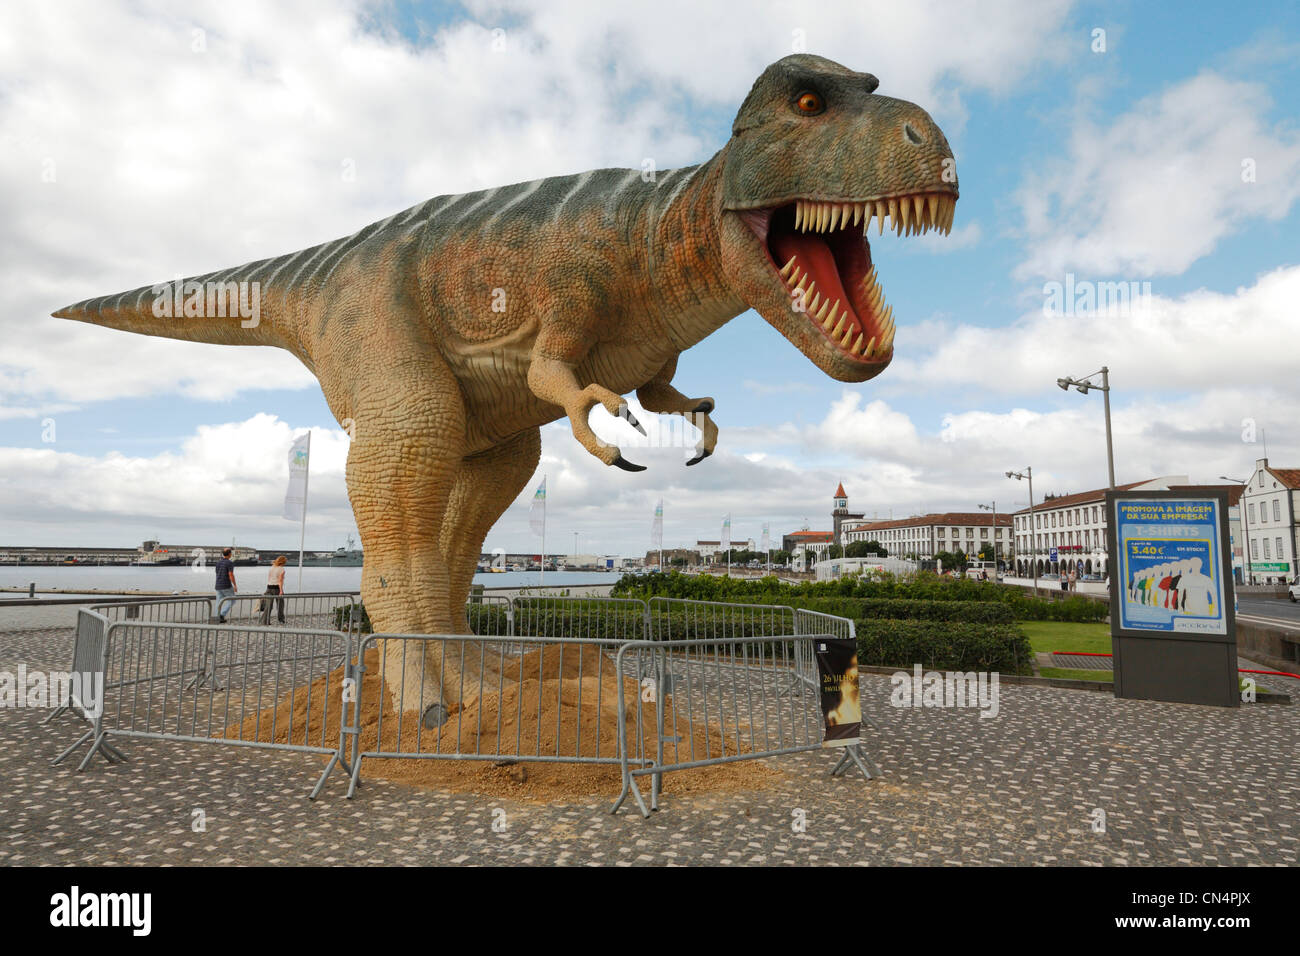 Menacing Tyrannosaurus Rex dinosaur in the portuguese city of Ponta Delgada. Azores islands - Stock Image